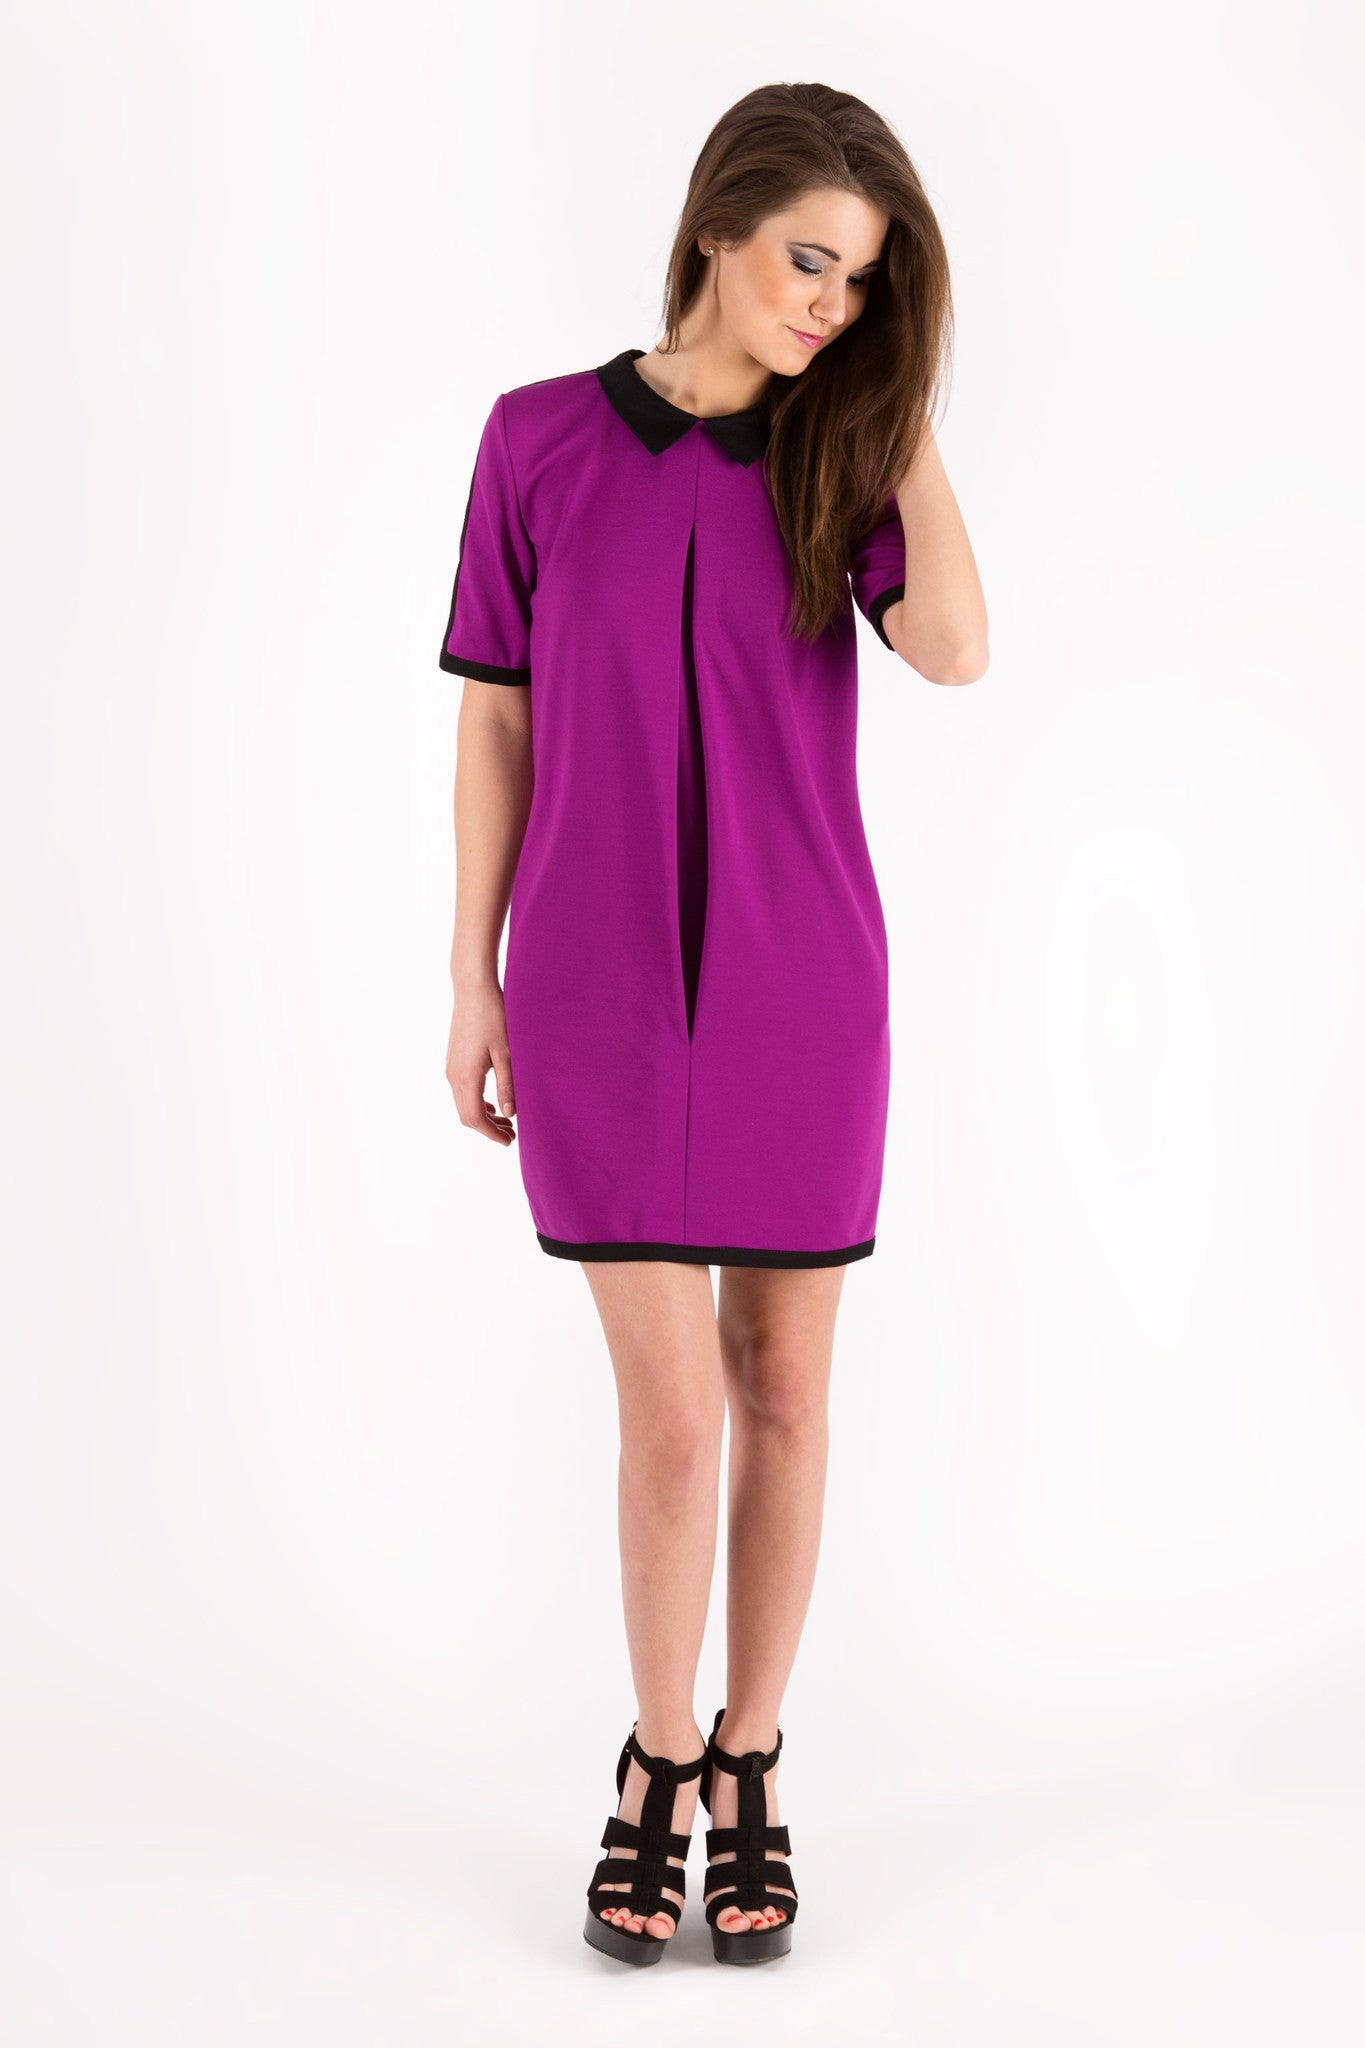 Fuchsia Bebe Dress